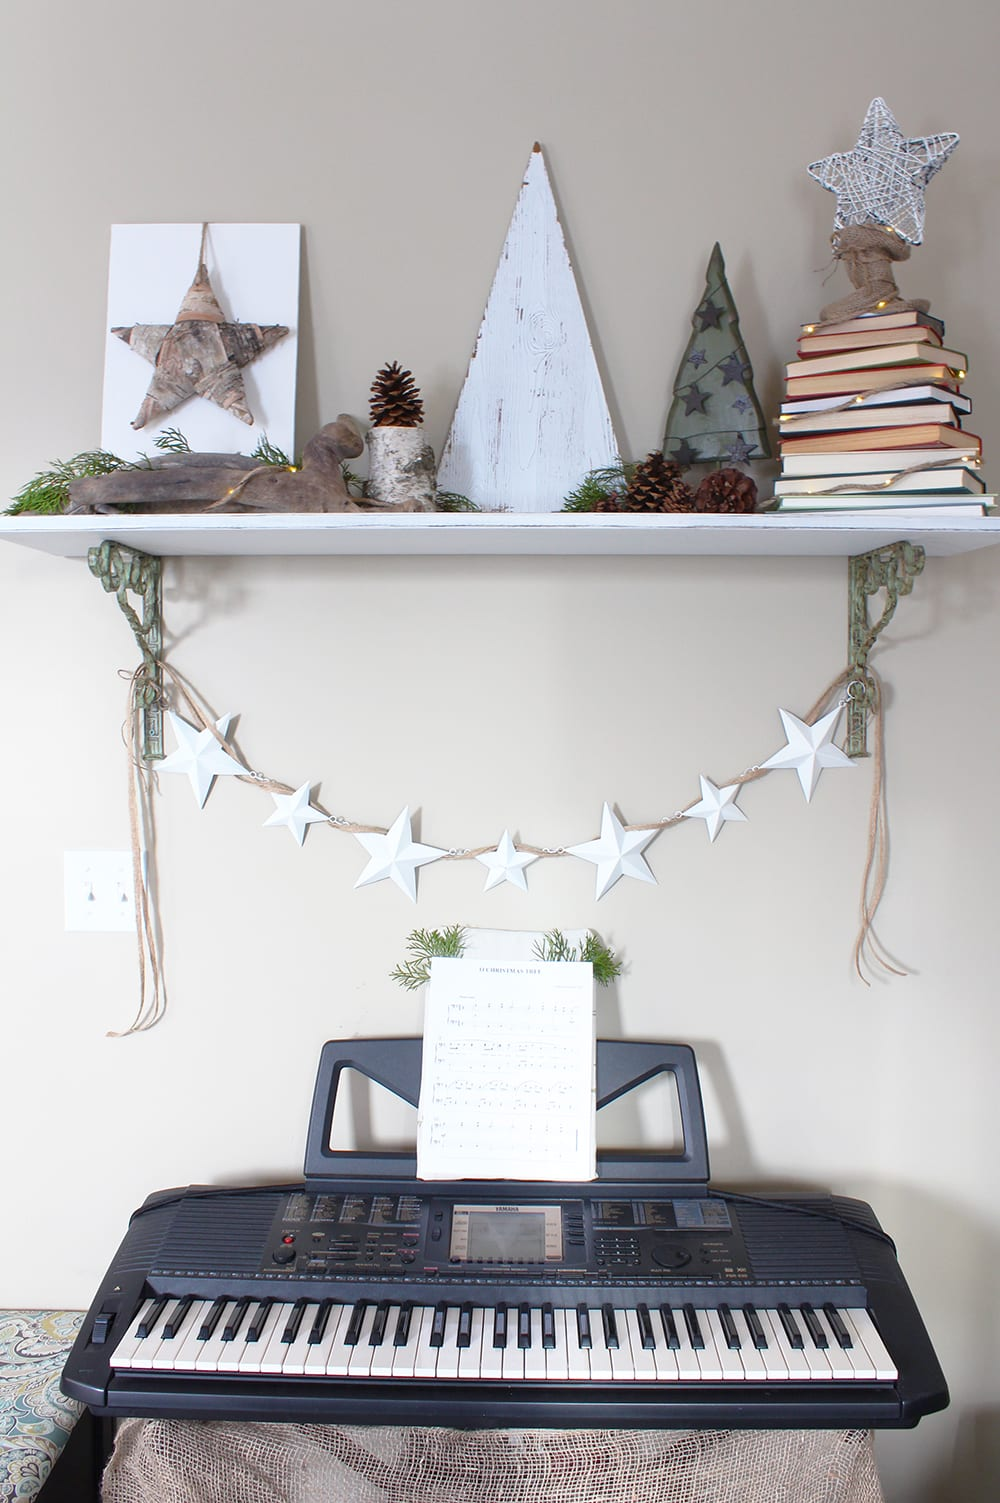 Nature inspired holiday decor featuring driftwood, a birch bark star and a Christmas tree made out of a stack of books.